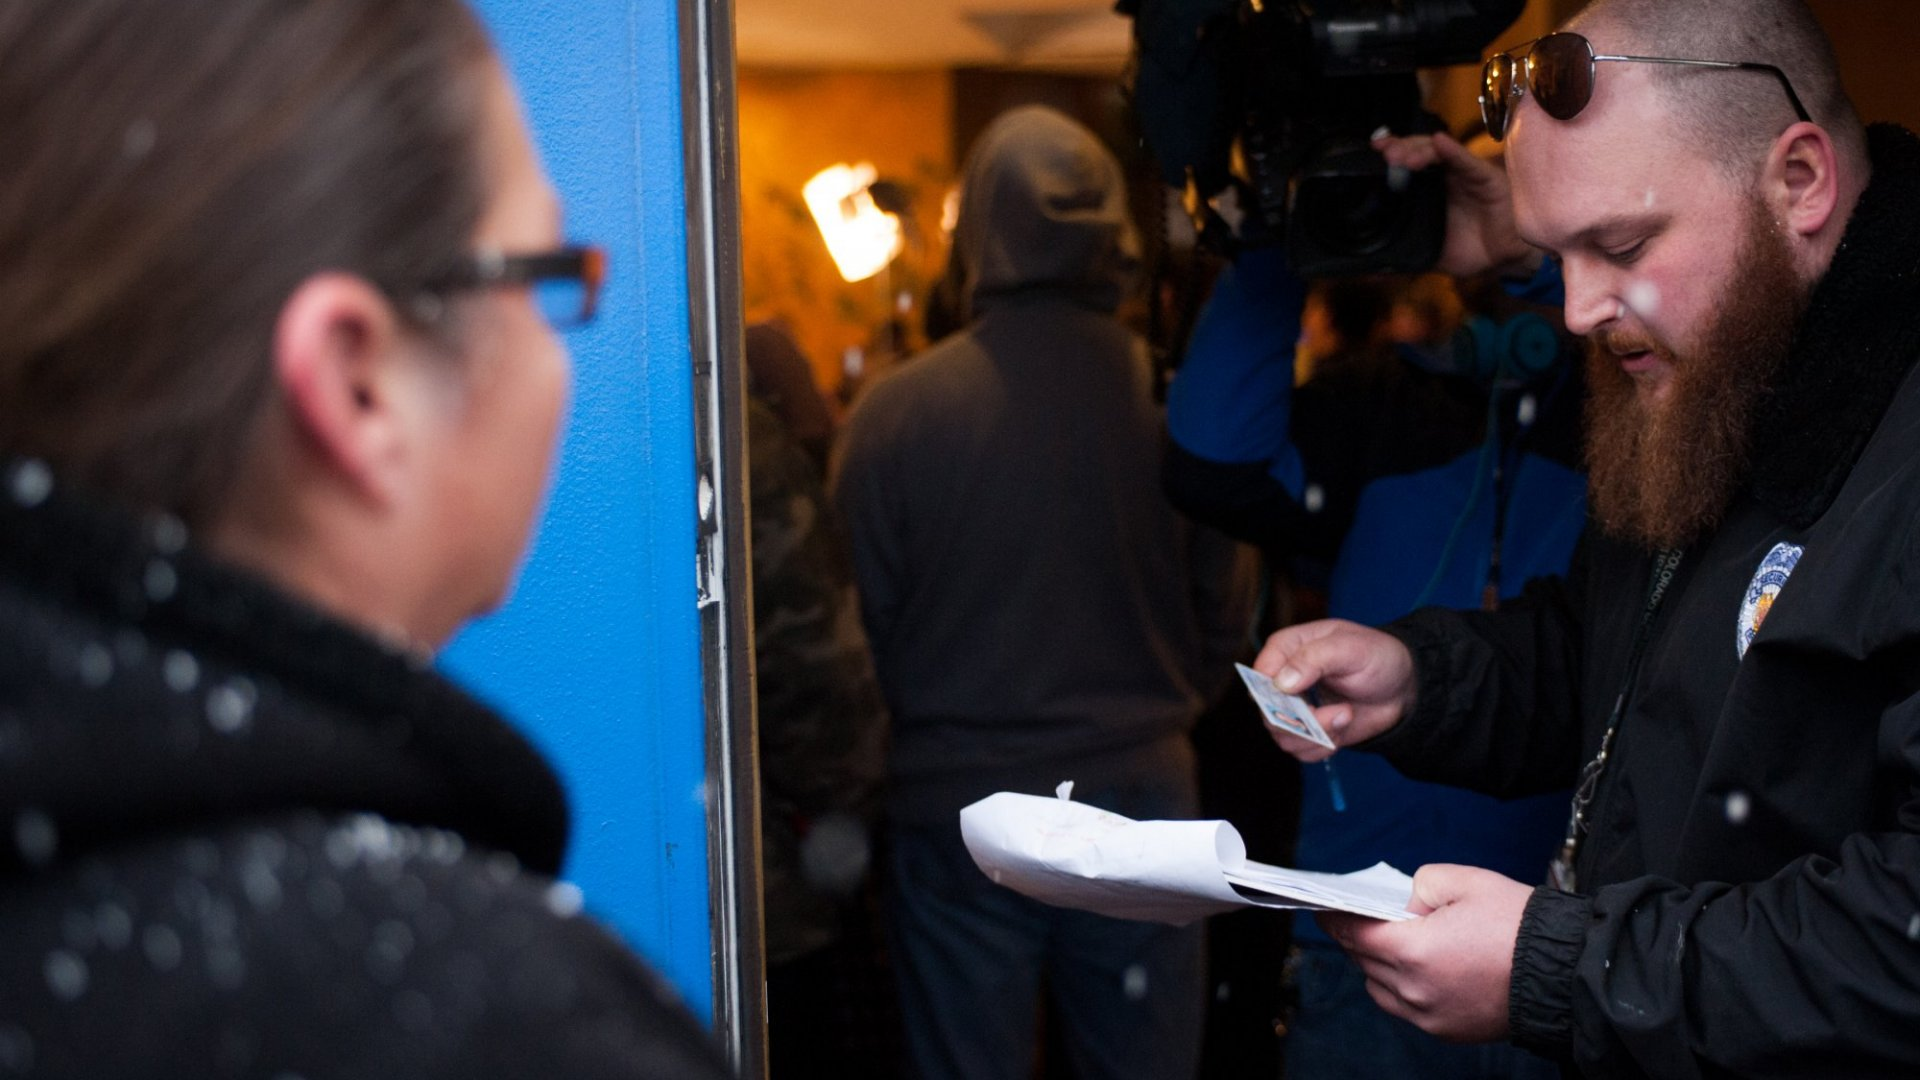 A security guard checks a woman's ID before she is allowed to enter one of Colorado's recreational marijuana dispensaries. Only adults 21 years of age or older are allowed inside dispensaries.